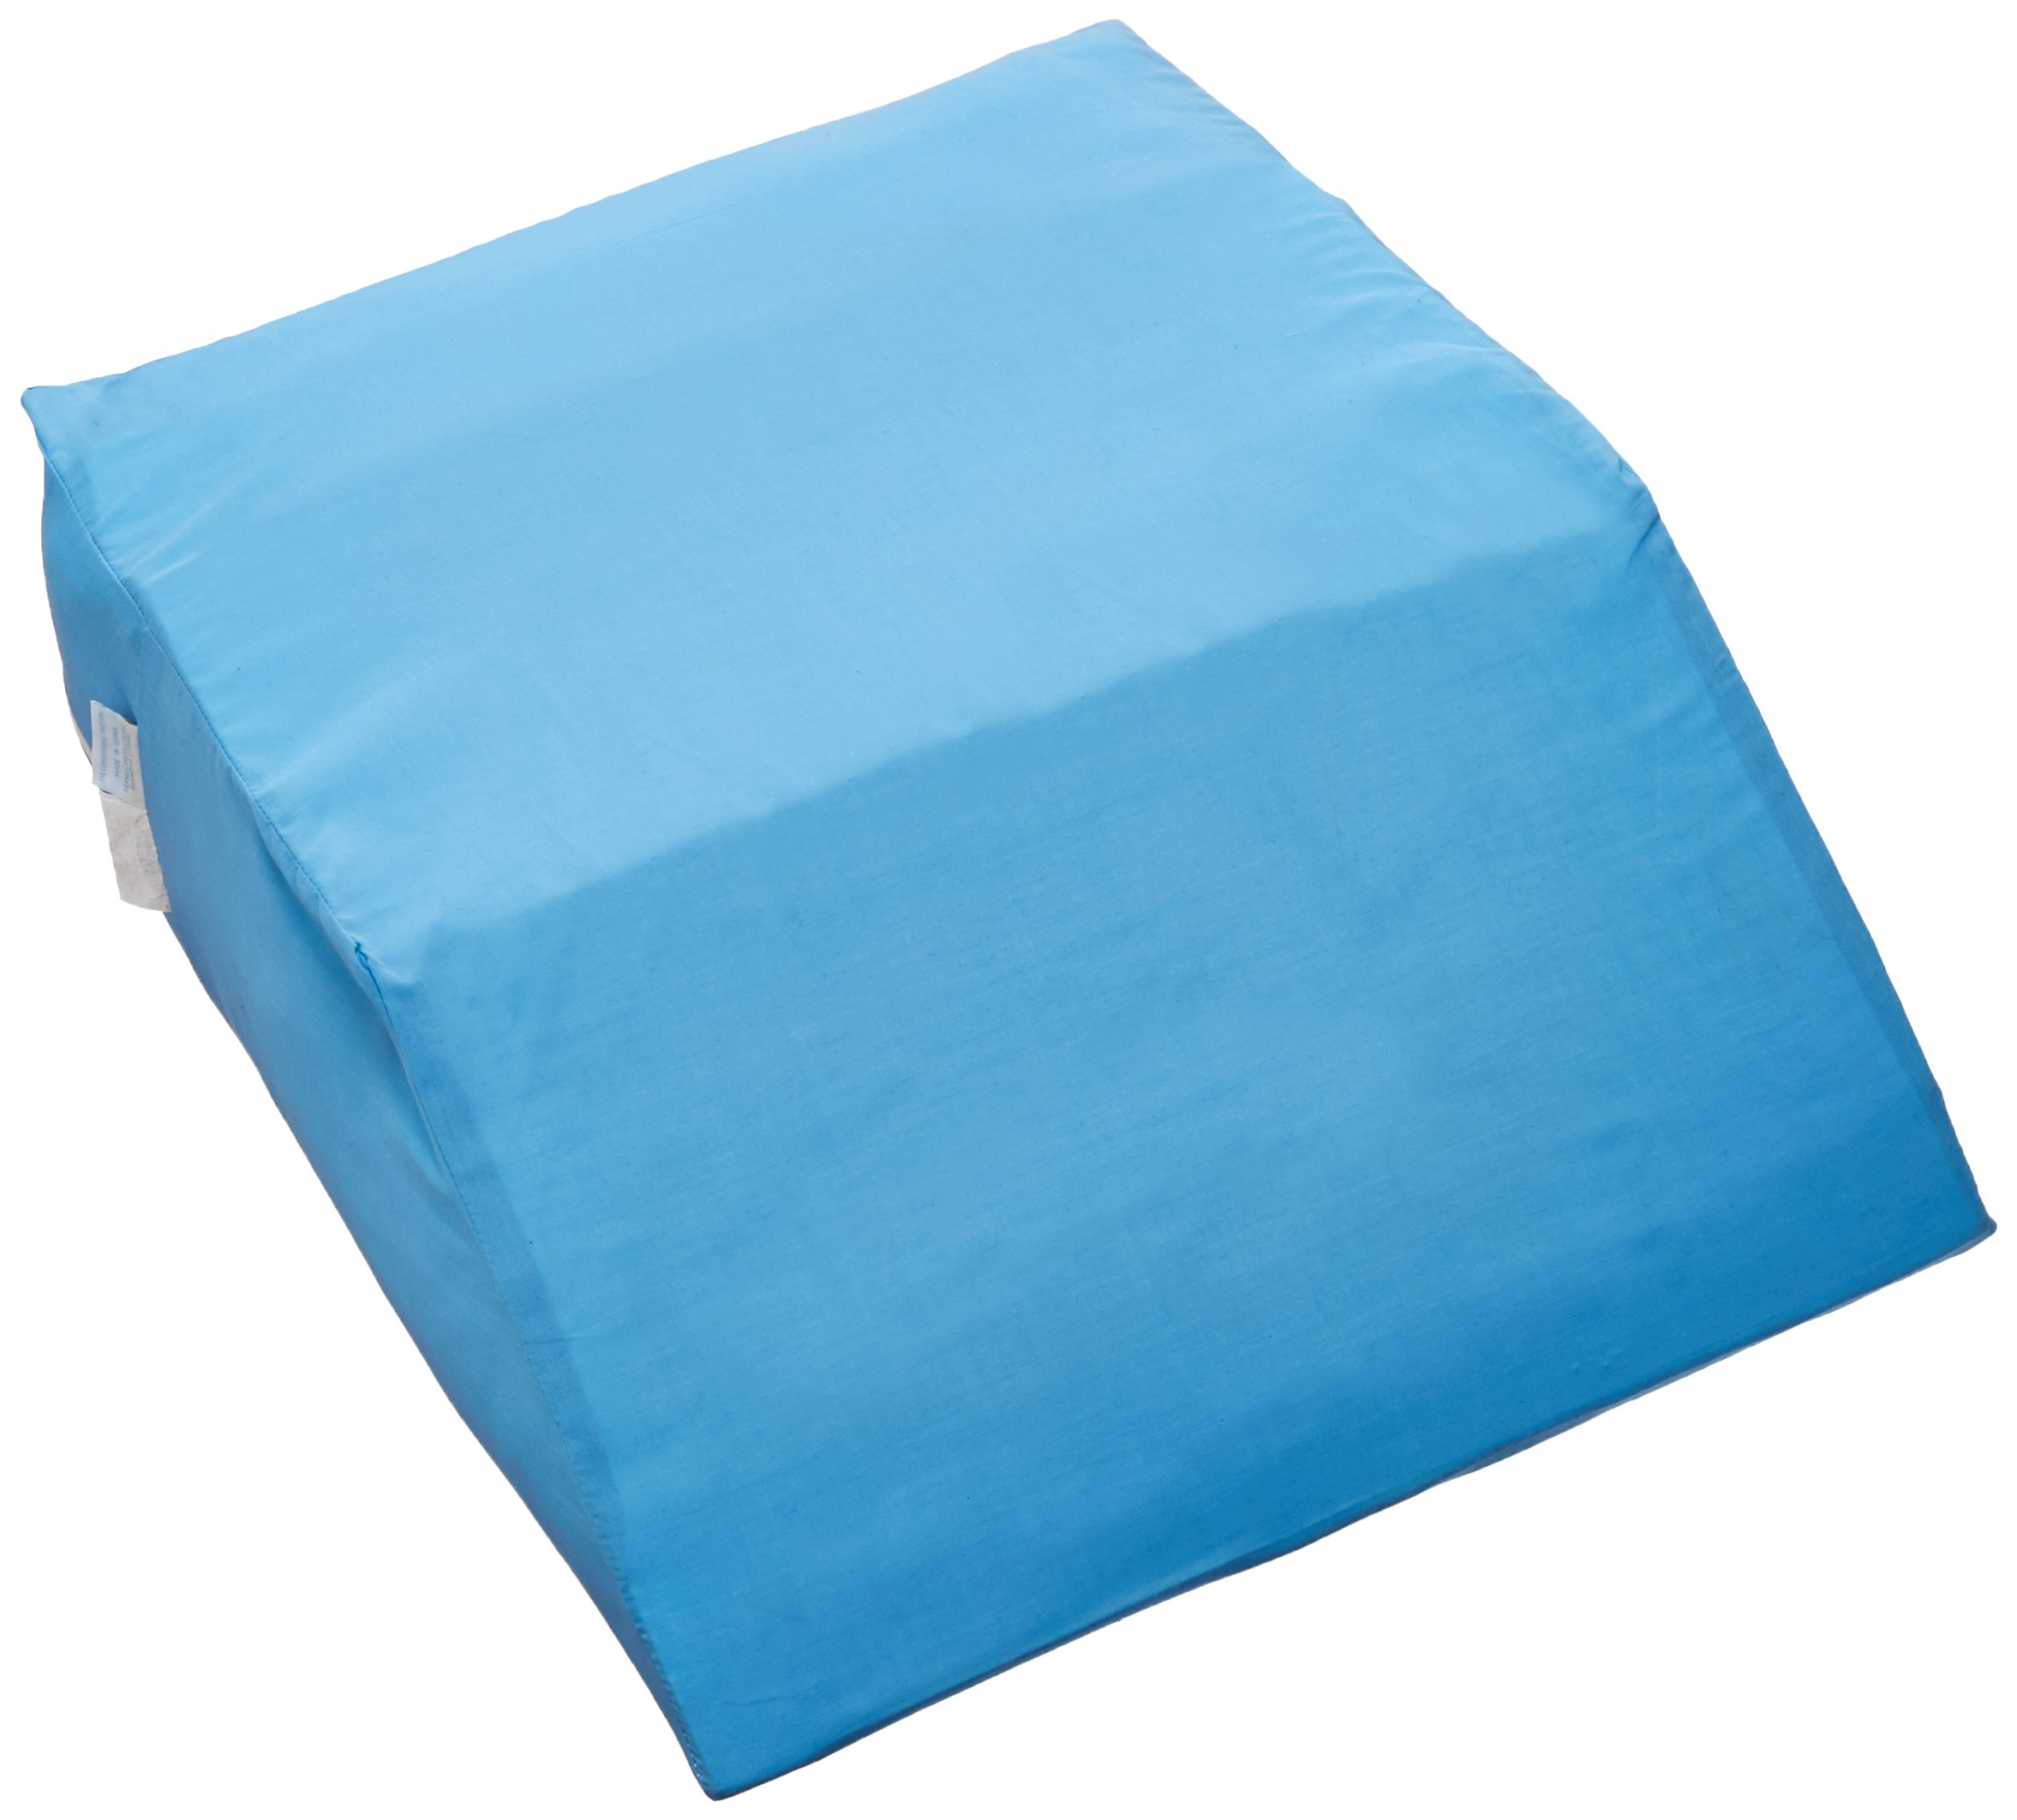 Hermell Products Blue Polycotton Zippered Cover for FW4020 Measuring 26'' x 20'' x 8''